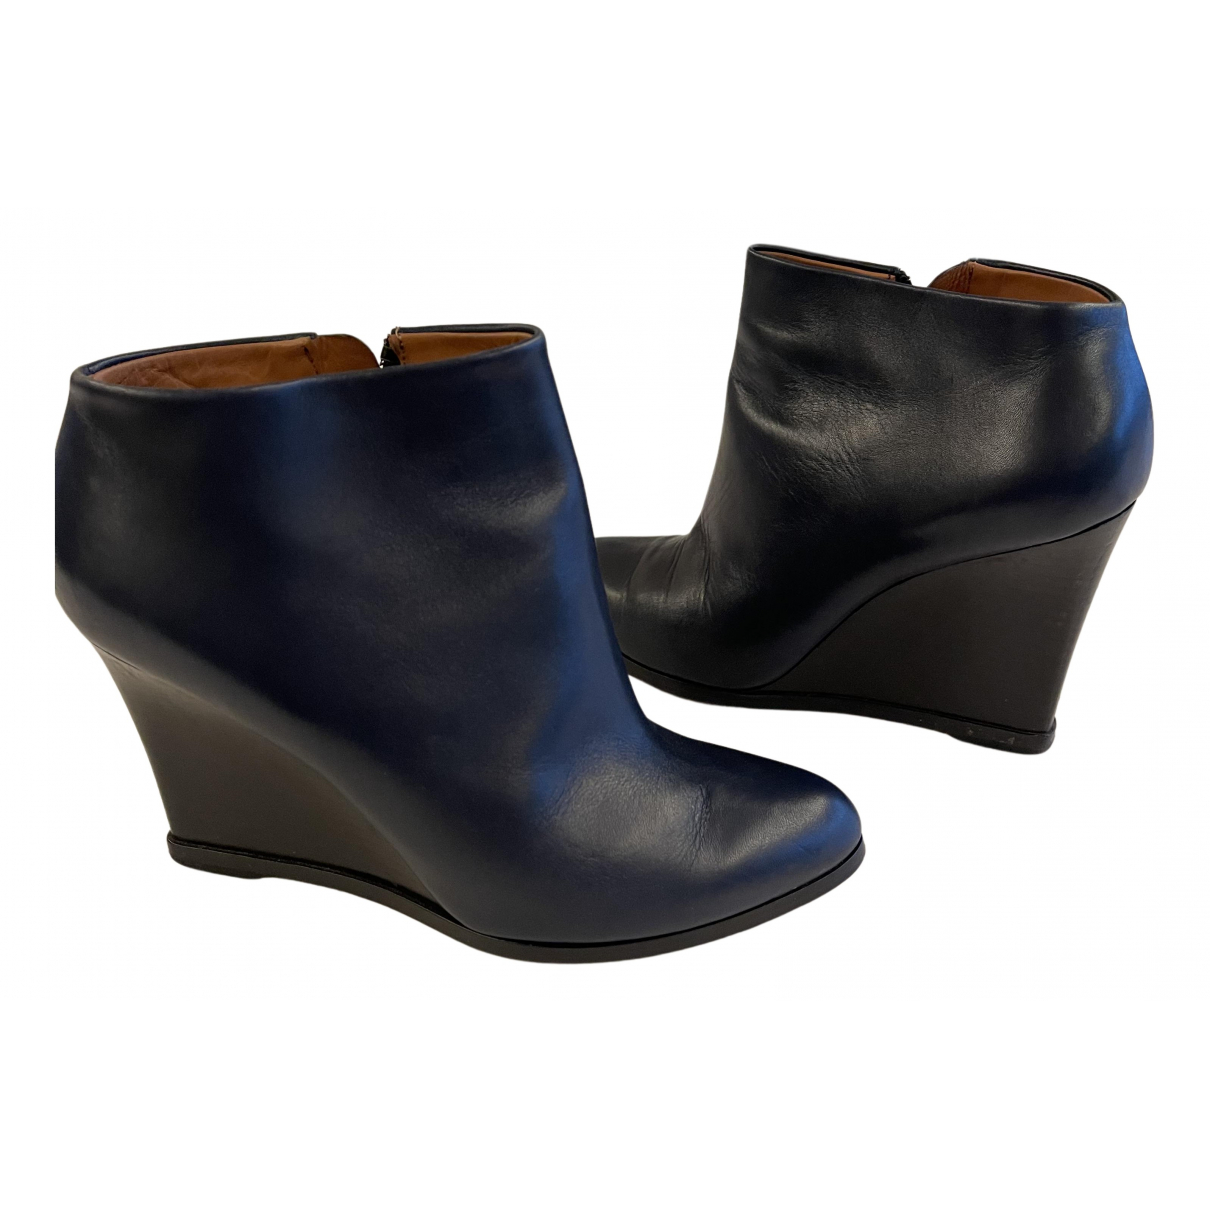 Celine N Navy Leather Ankle boots for Women